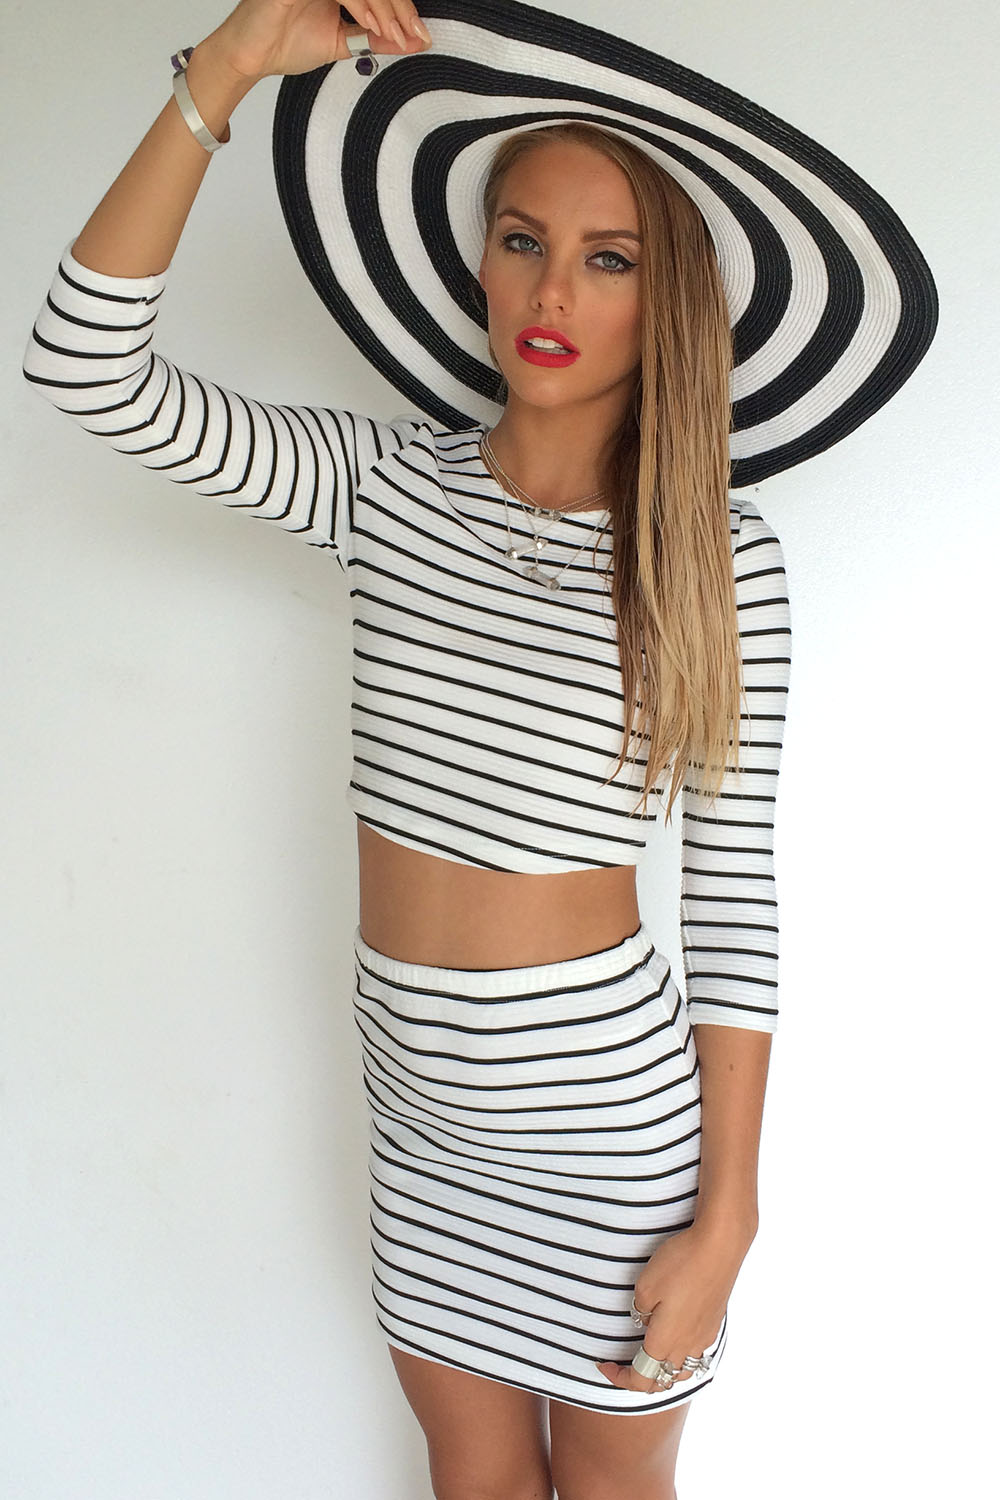 White Pencil/High Waist Skirt - Black and White Pin Stripe | UsTrendy